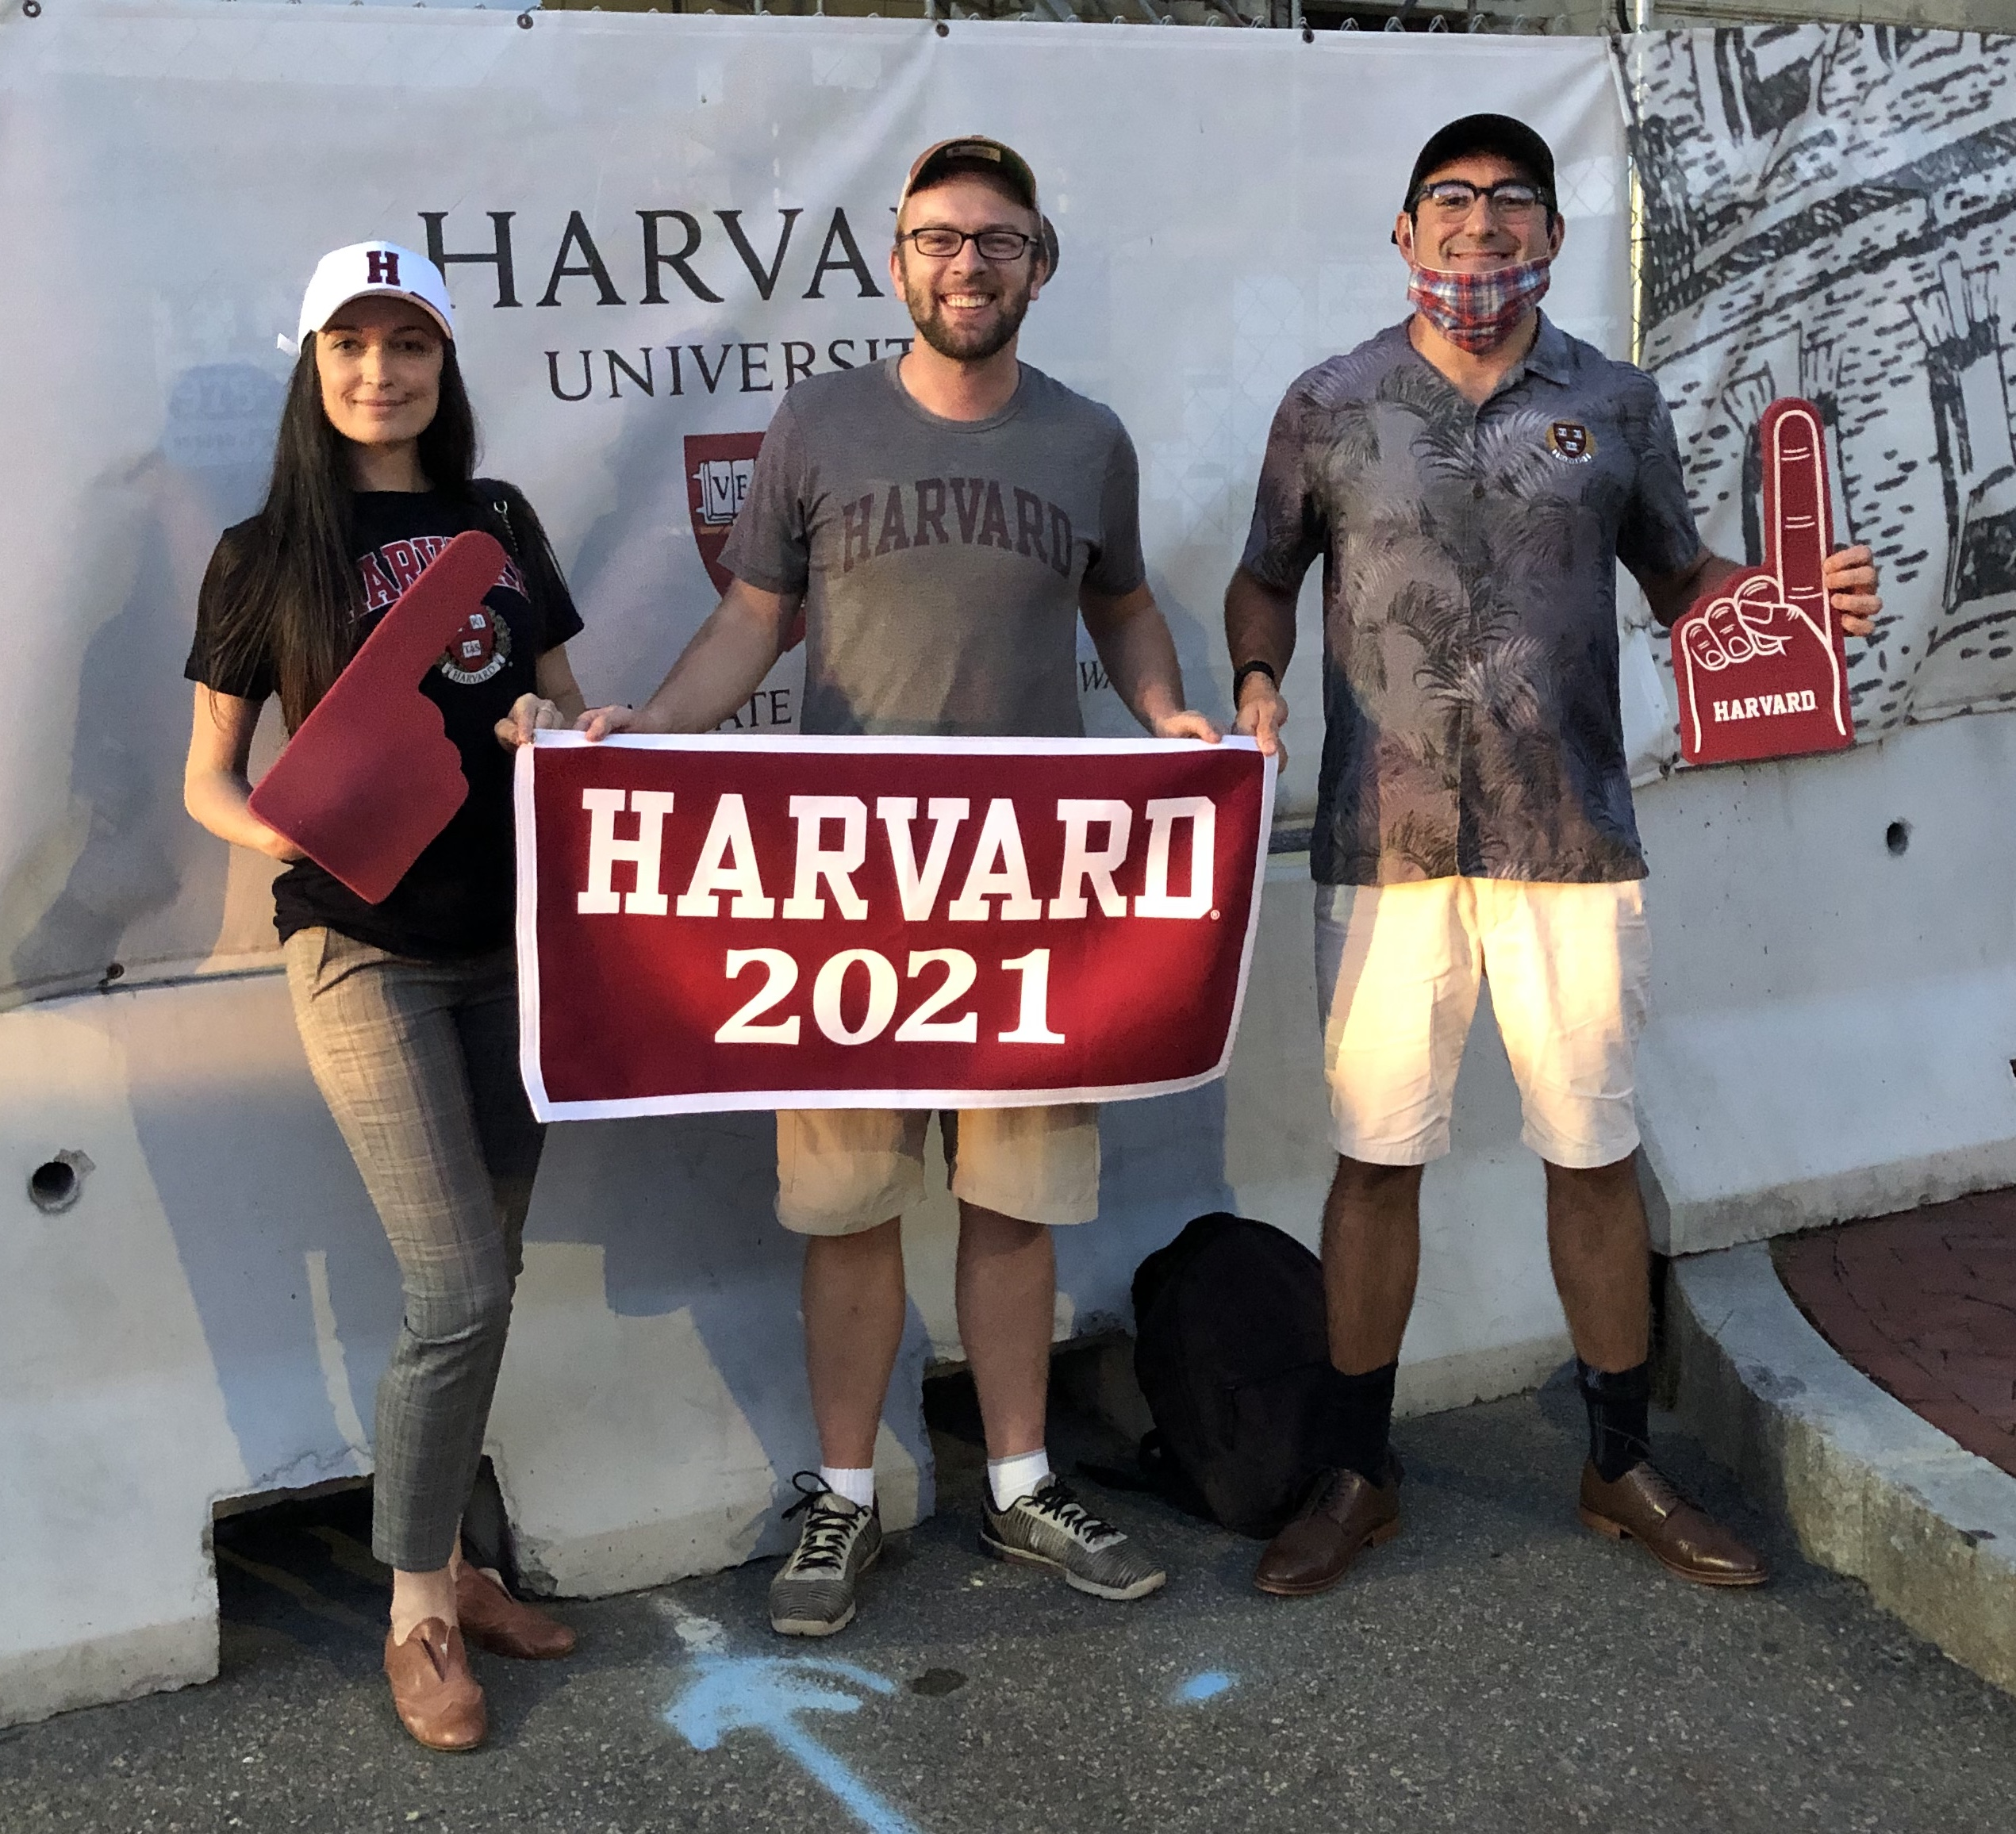 Jacob Khan, alongside other Harvard Grad Students, welcomes Harvard class of 2024 during COVID-19